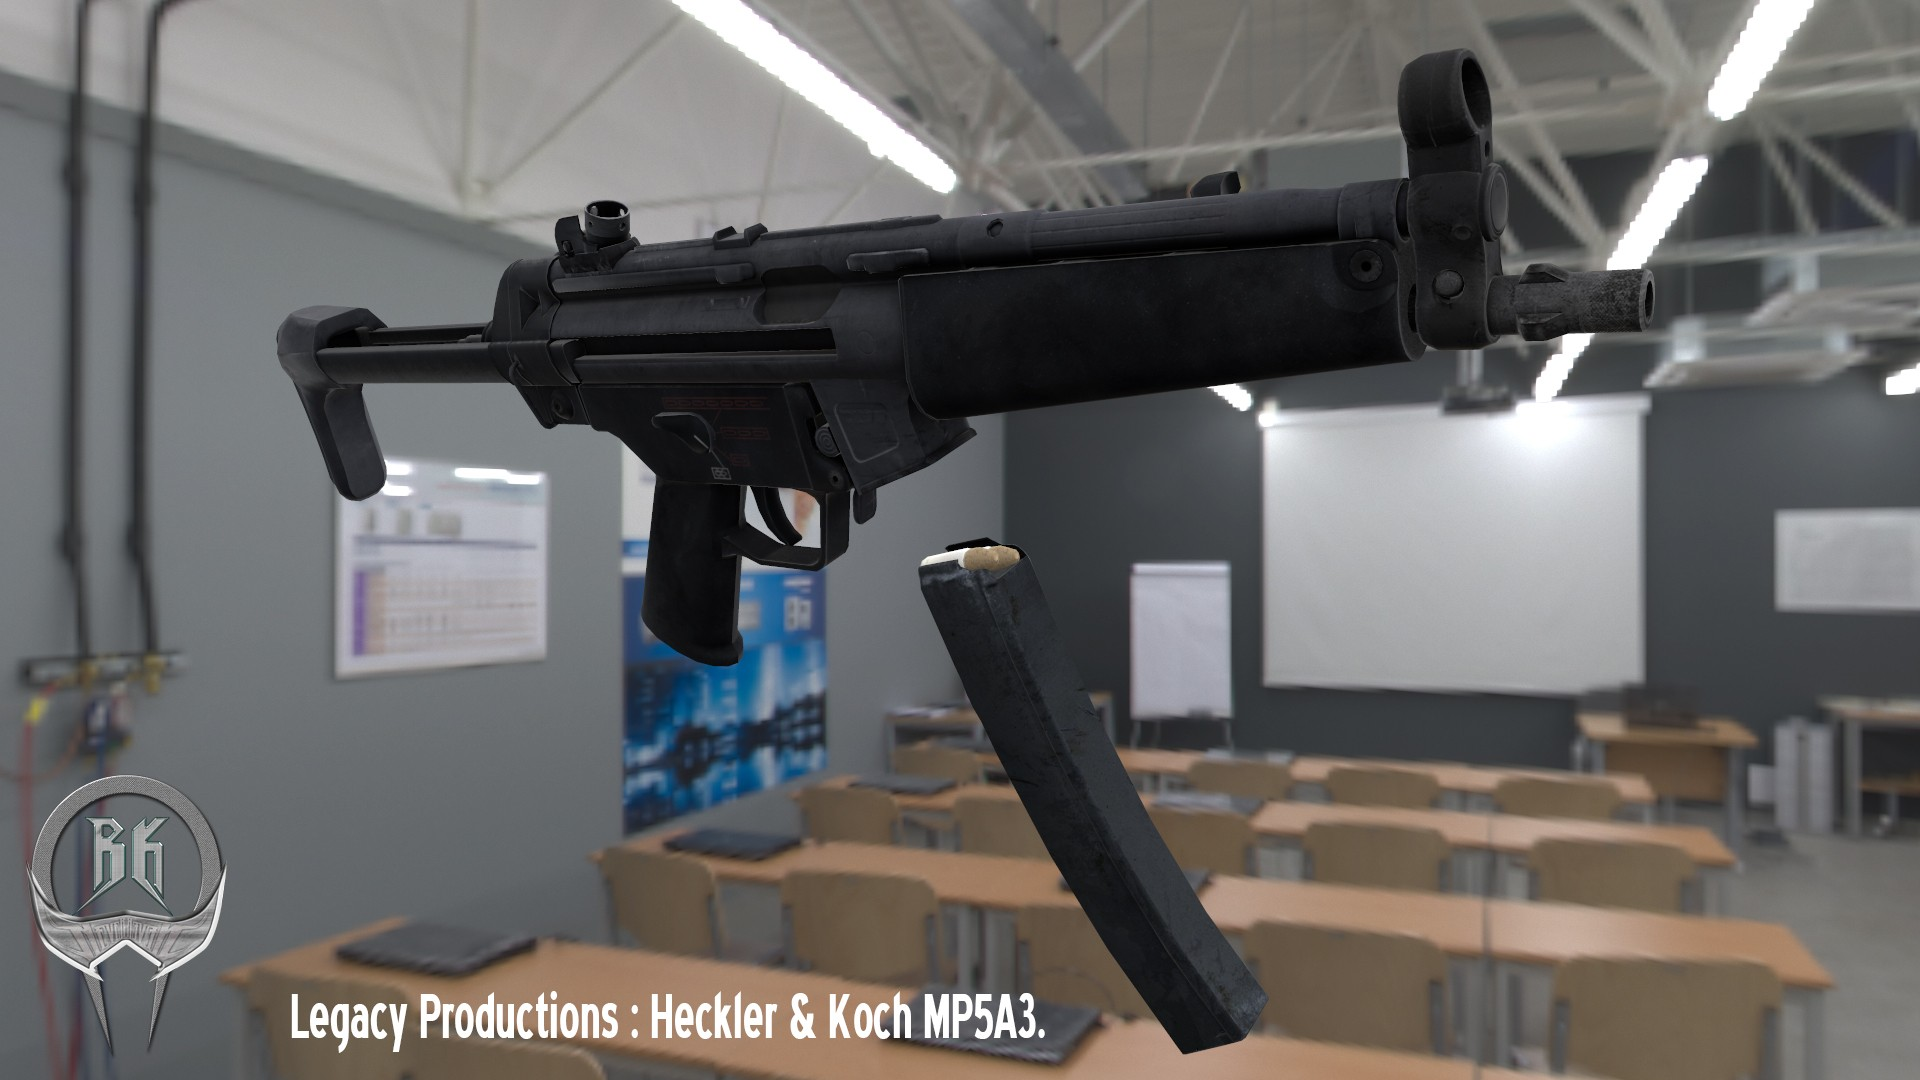 MP5 Heckler & Koch